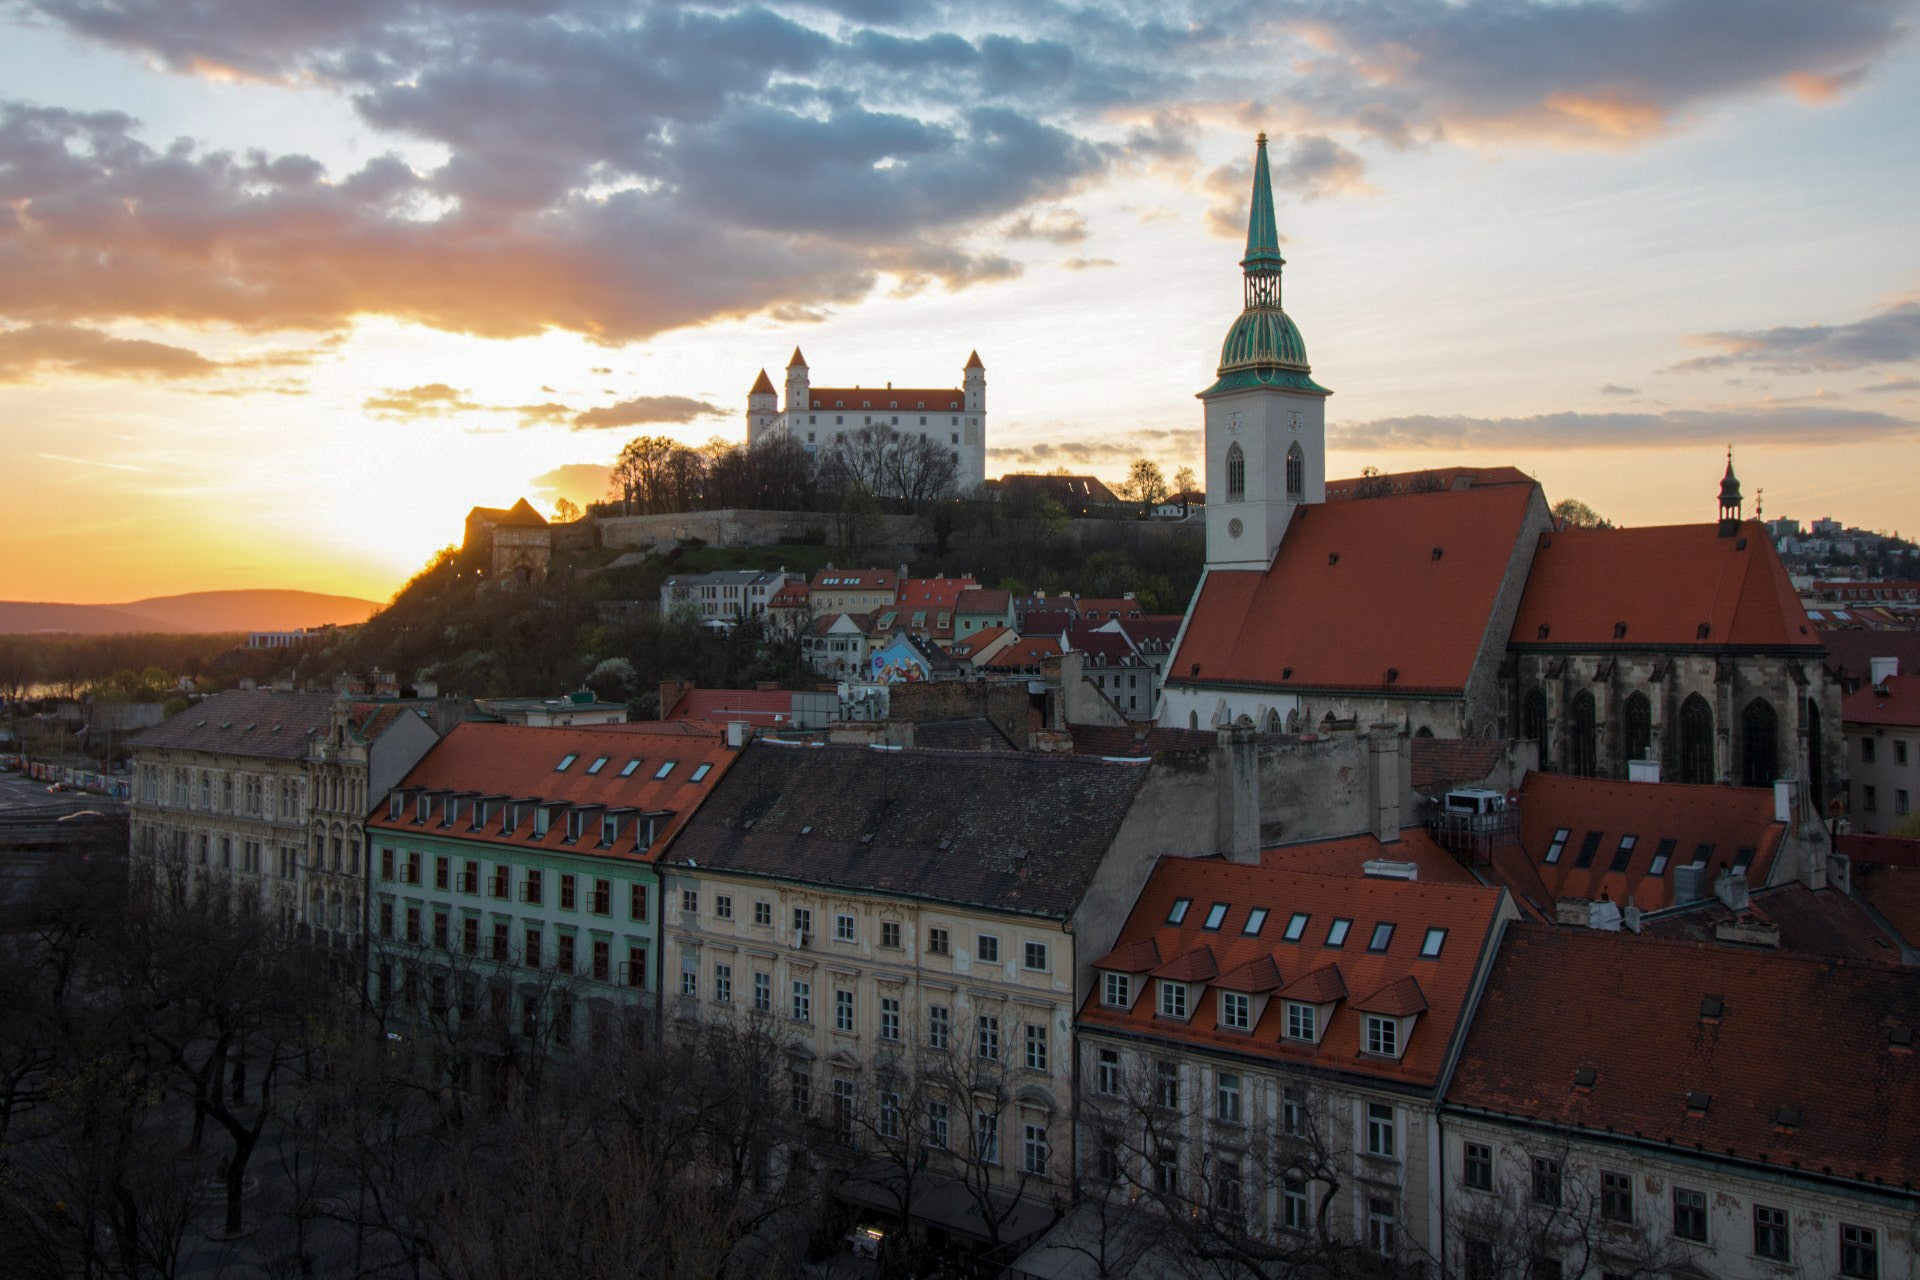 view-from-skybar-bratislava-across-to-bratislava-castle-and-st-martins-cathedral-at-sunset